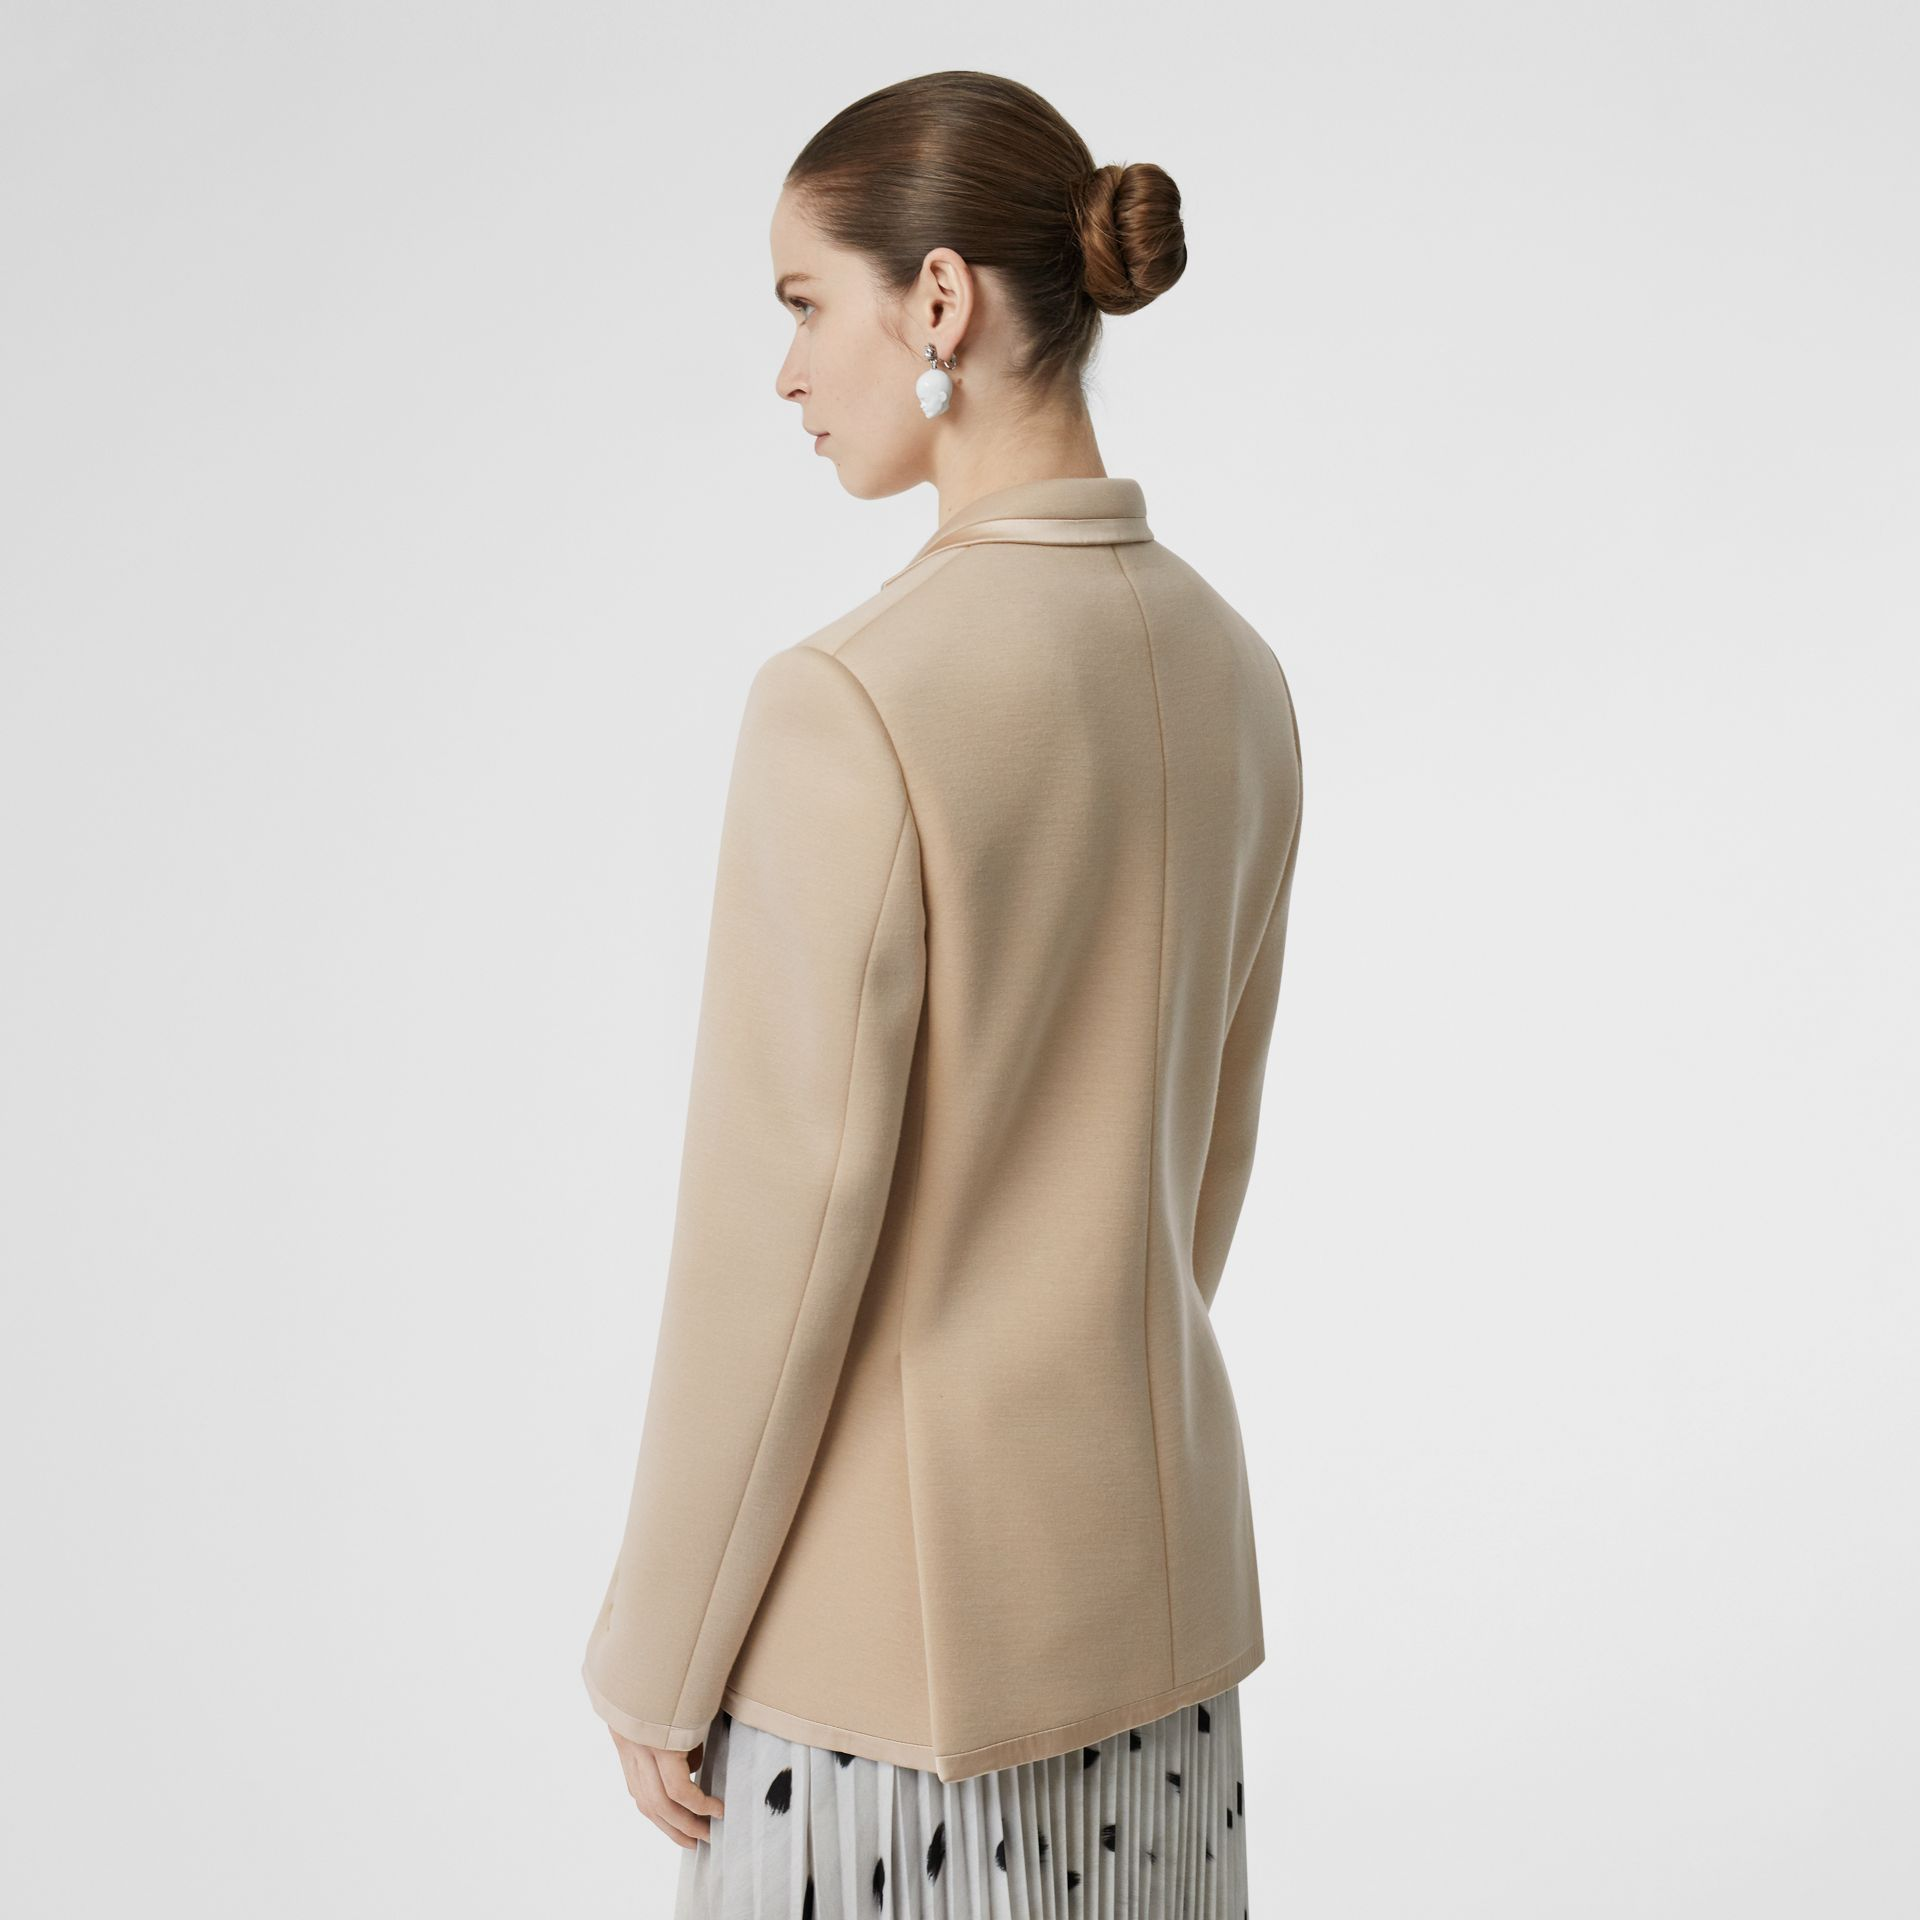 Silk Trim Neoprene Blazer in Teddy Beige - Women | Burberry Australia - gallery image 2